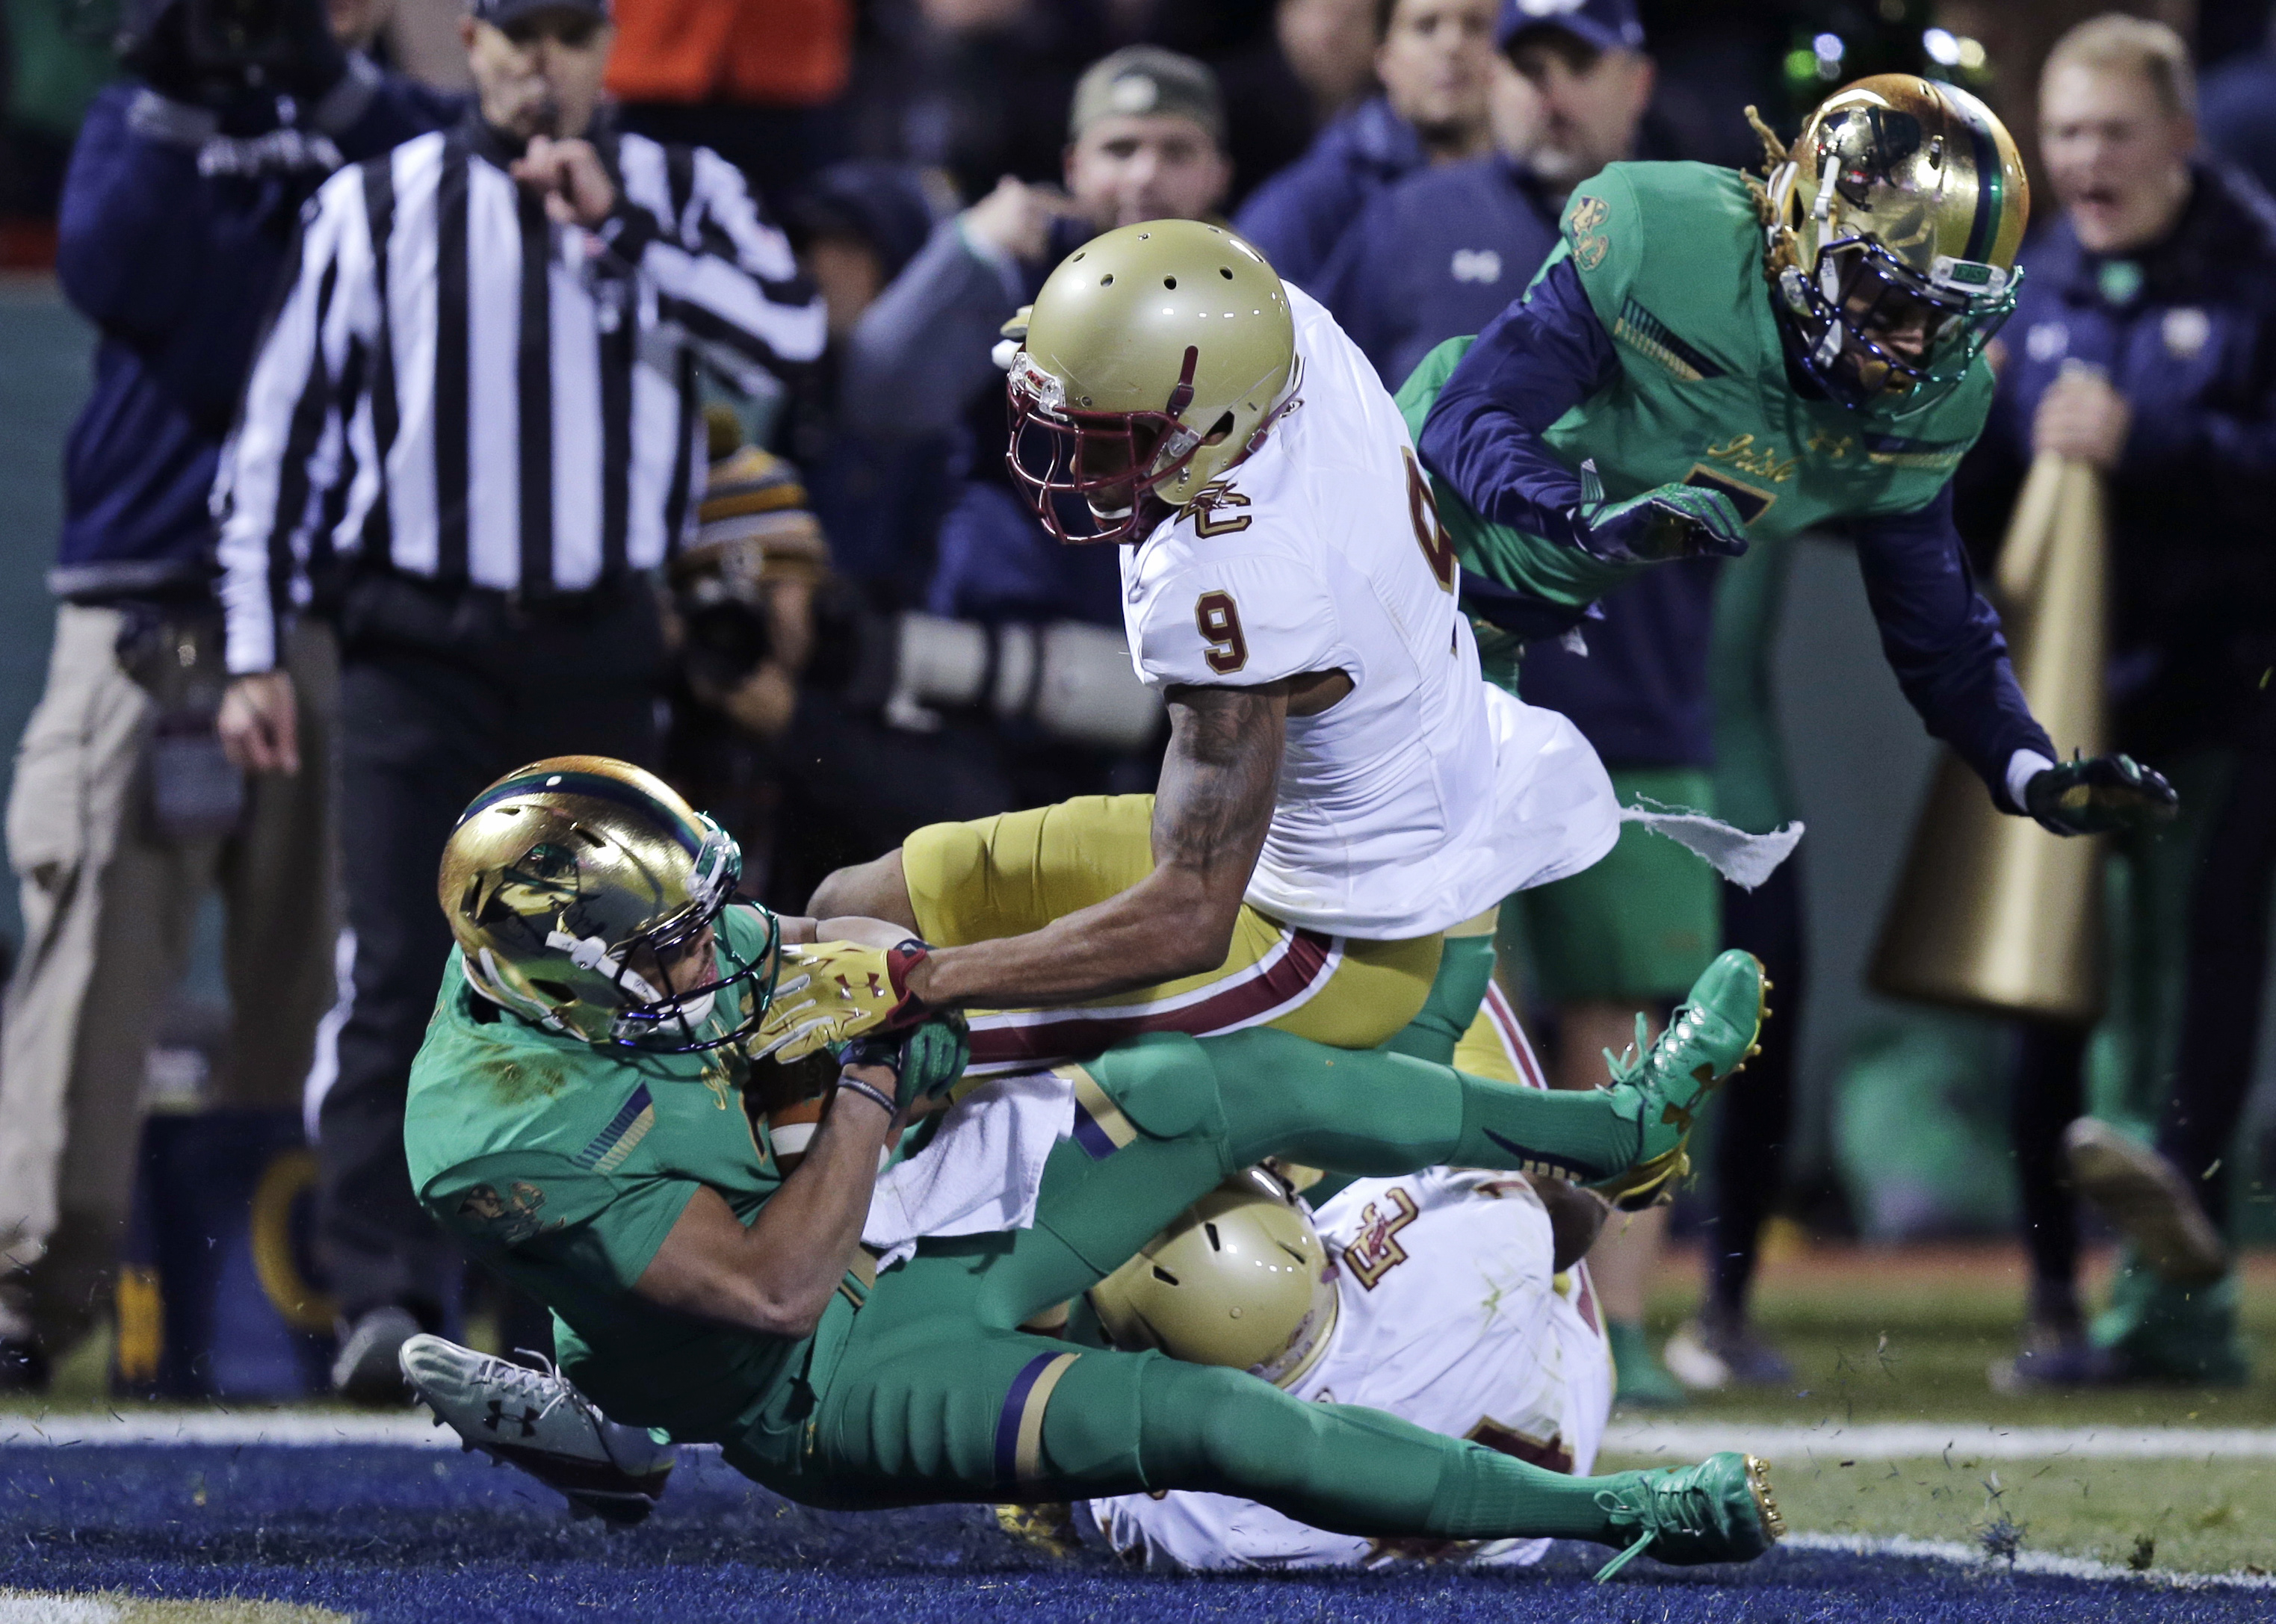 Notre Dame wide receiver Amir Carlisle, left, hangs onto the ball as he drops into the end zone for a touchdown against Boston College defensive backs John Johnson (9) and Gabriel McClary, rear, during the first half of the Shamrock Series NCAA college fo